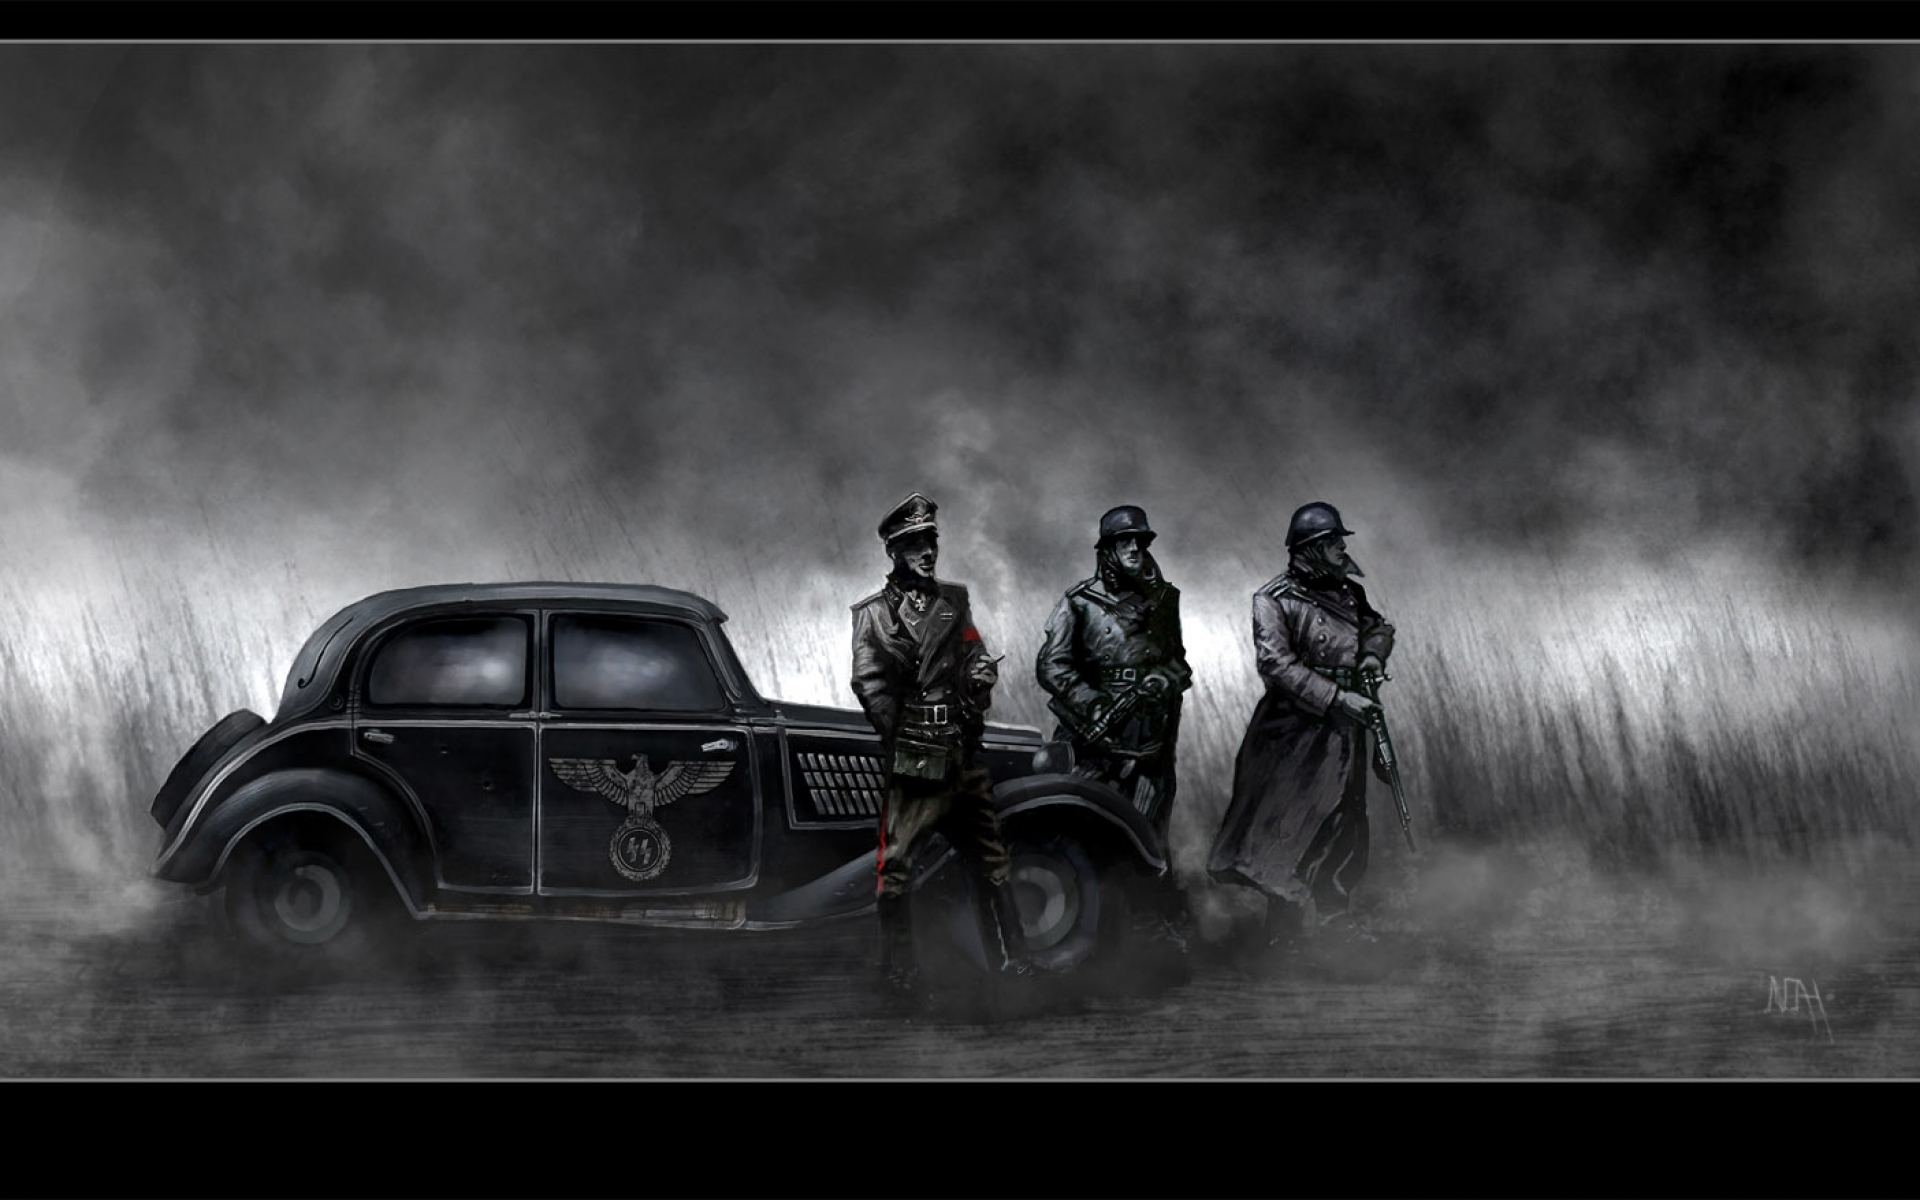 1 Gestapo Hd Wallpapers  Background Images - Wallpaper Abyss-5417